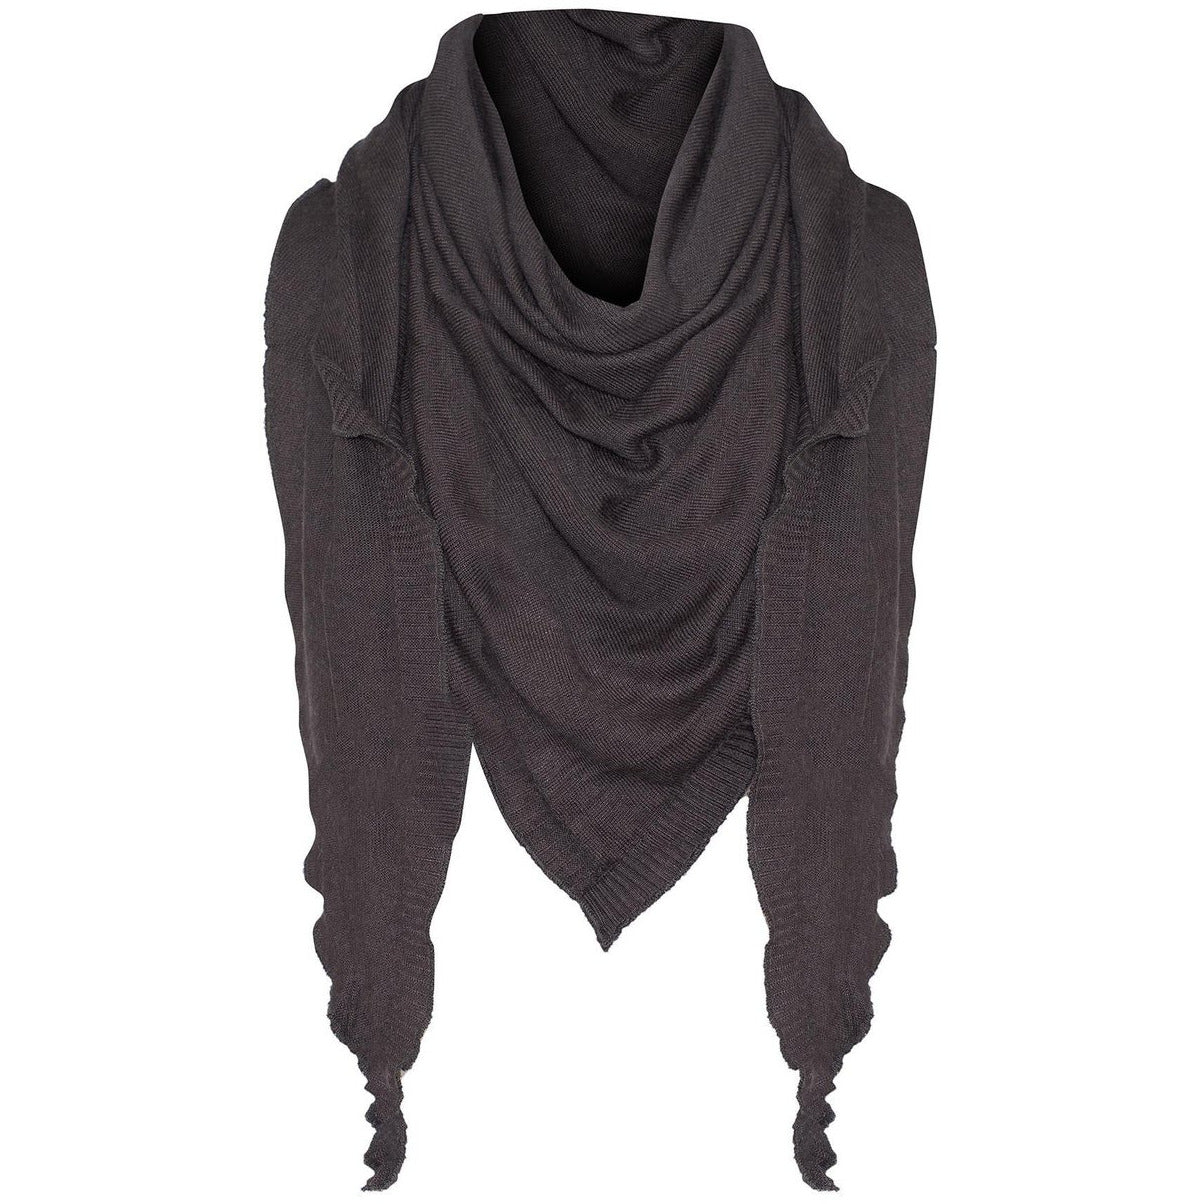 Lou Lou Australia Bamboo The Sassoon Scarf in Steel